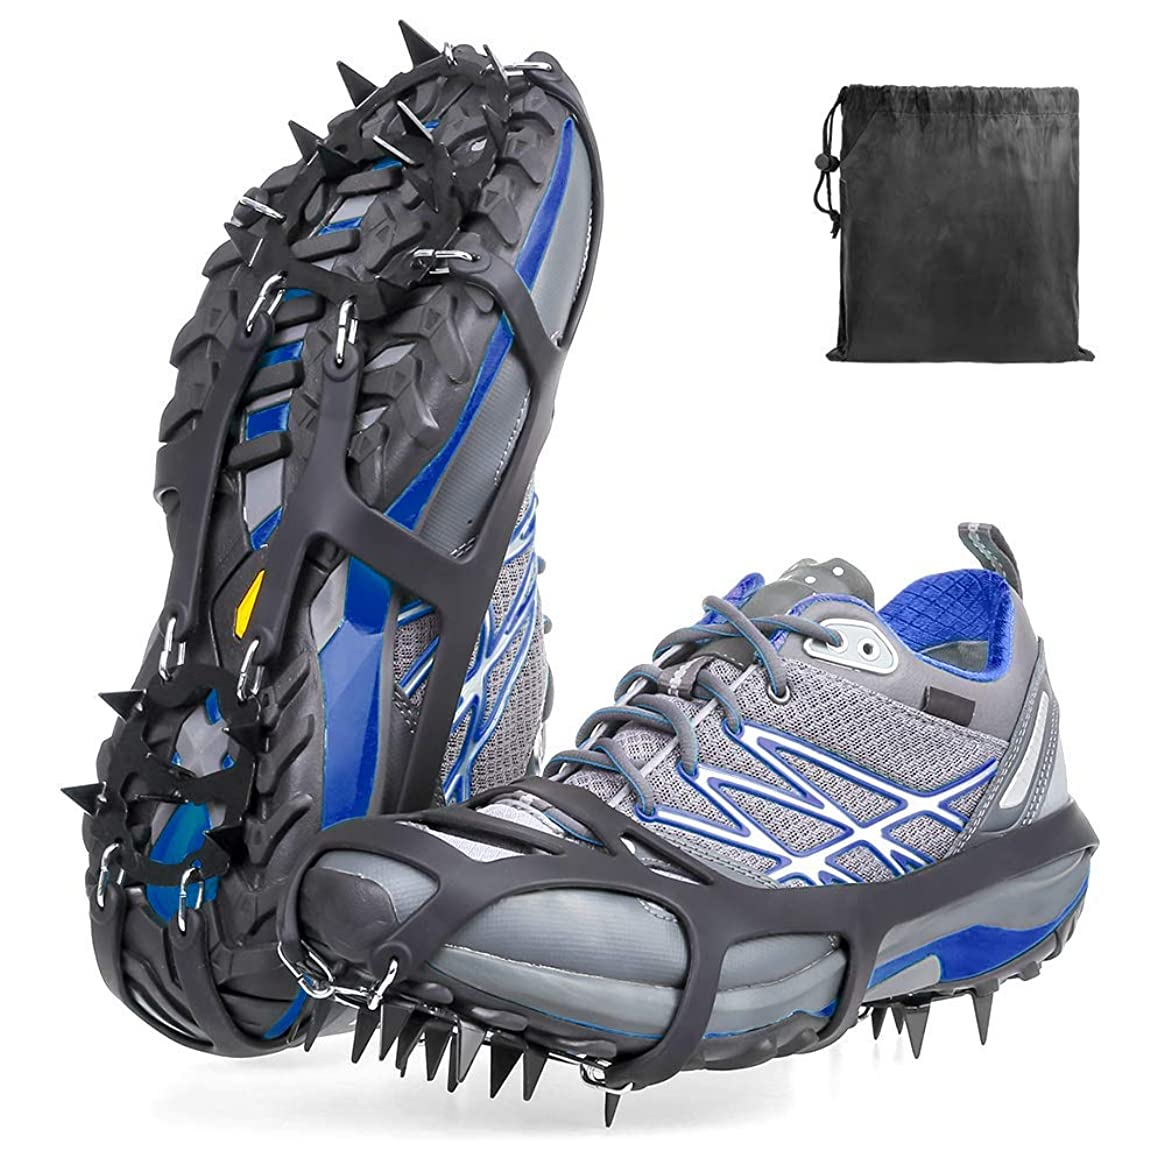 LIKE company Crampons Ice Snow Grips Anti-Slip Ice Cleats Walk Traction Cleats with 18 Manganese Steel Spikes Safe Protect for Hiking Fishing Walking Climbing Jogging